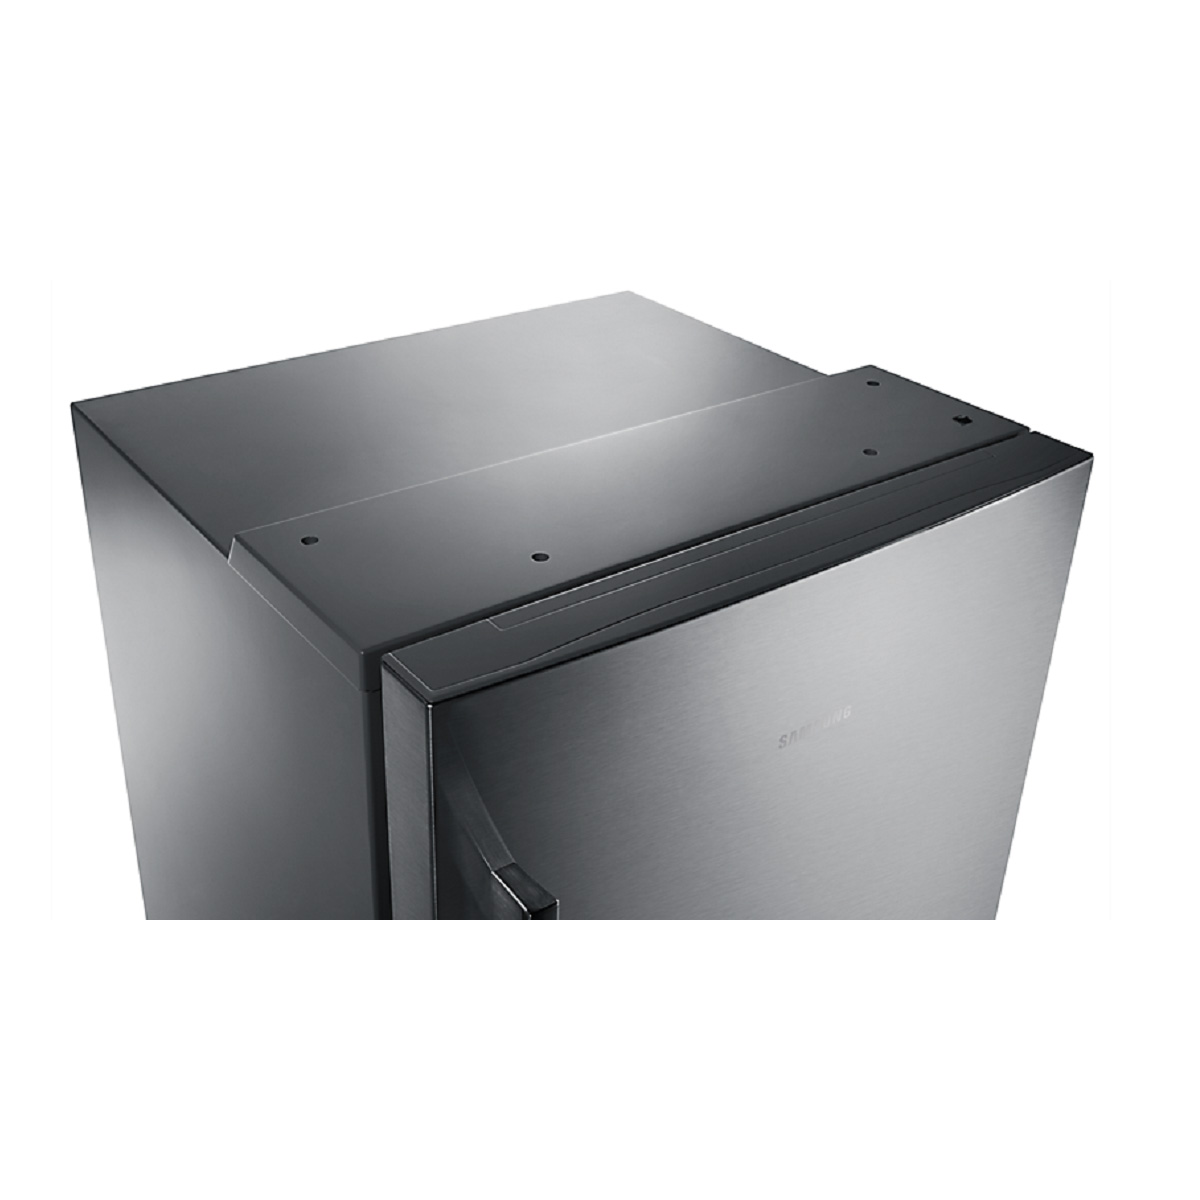 Samsung SRL458ELS 458Litres Bottom Mount Fridge 35965